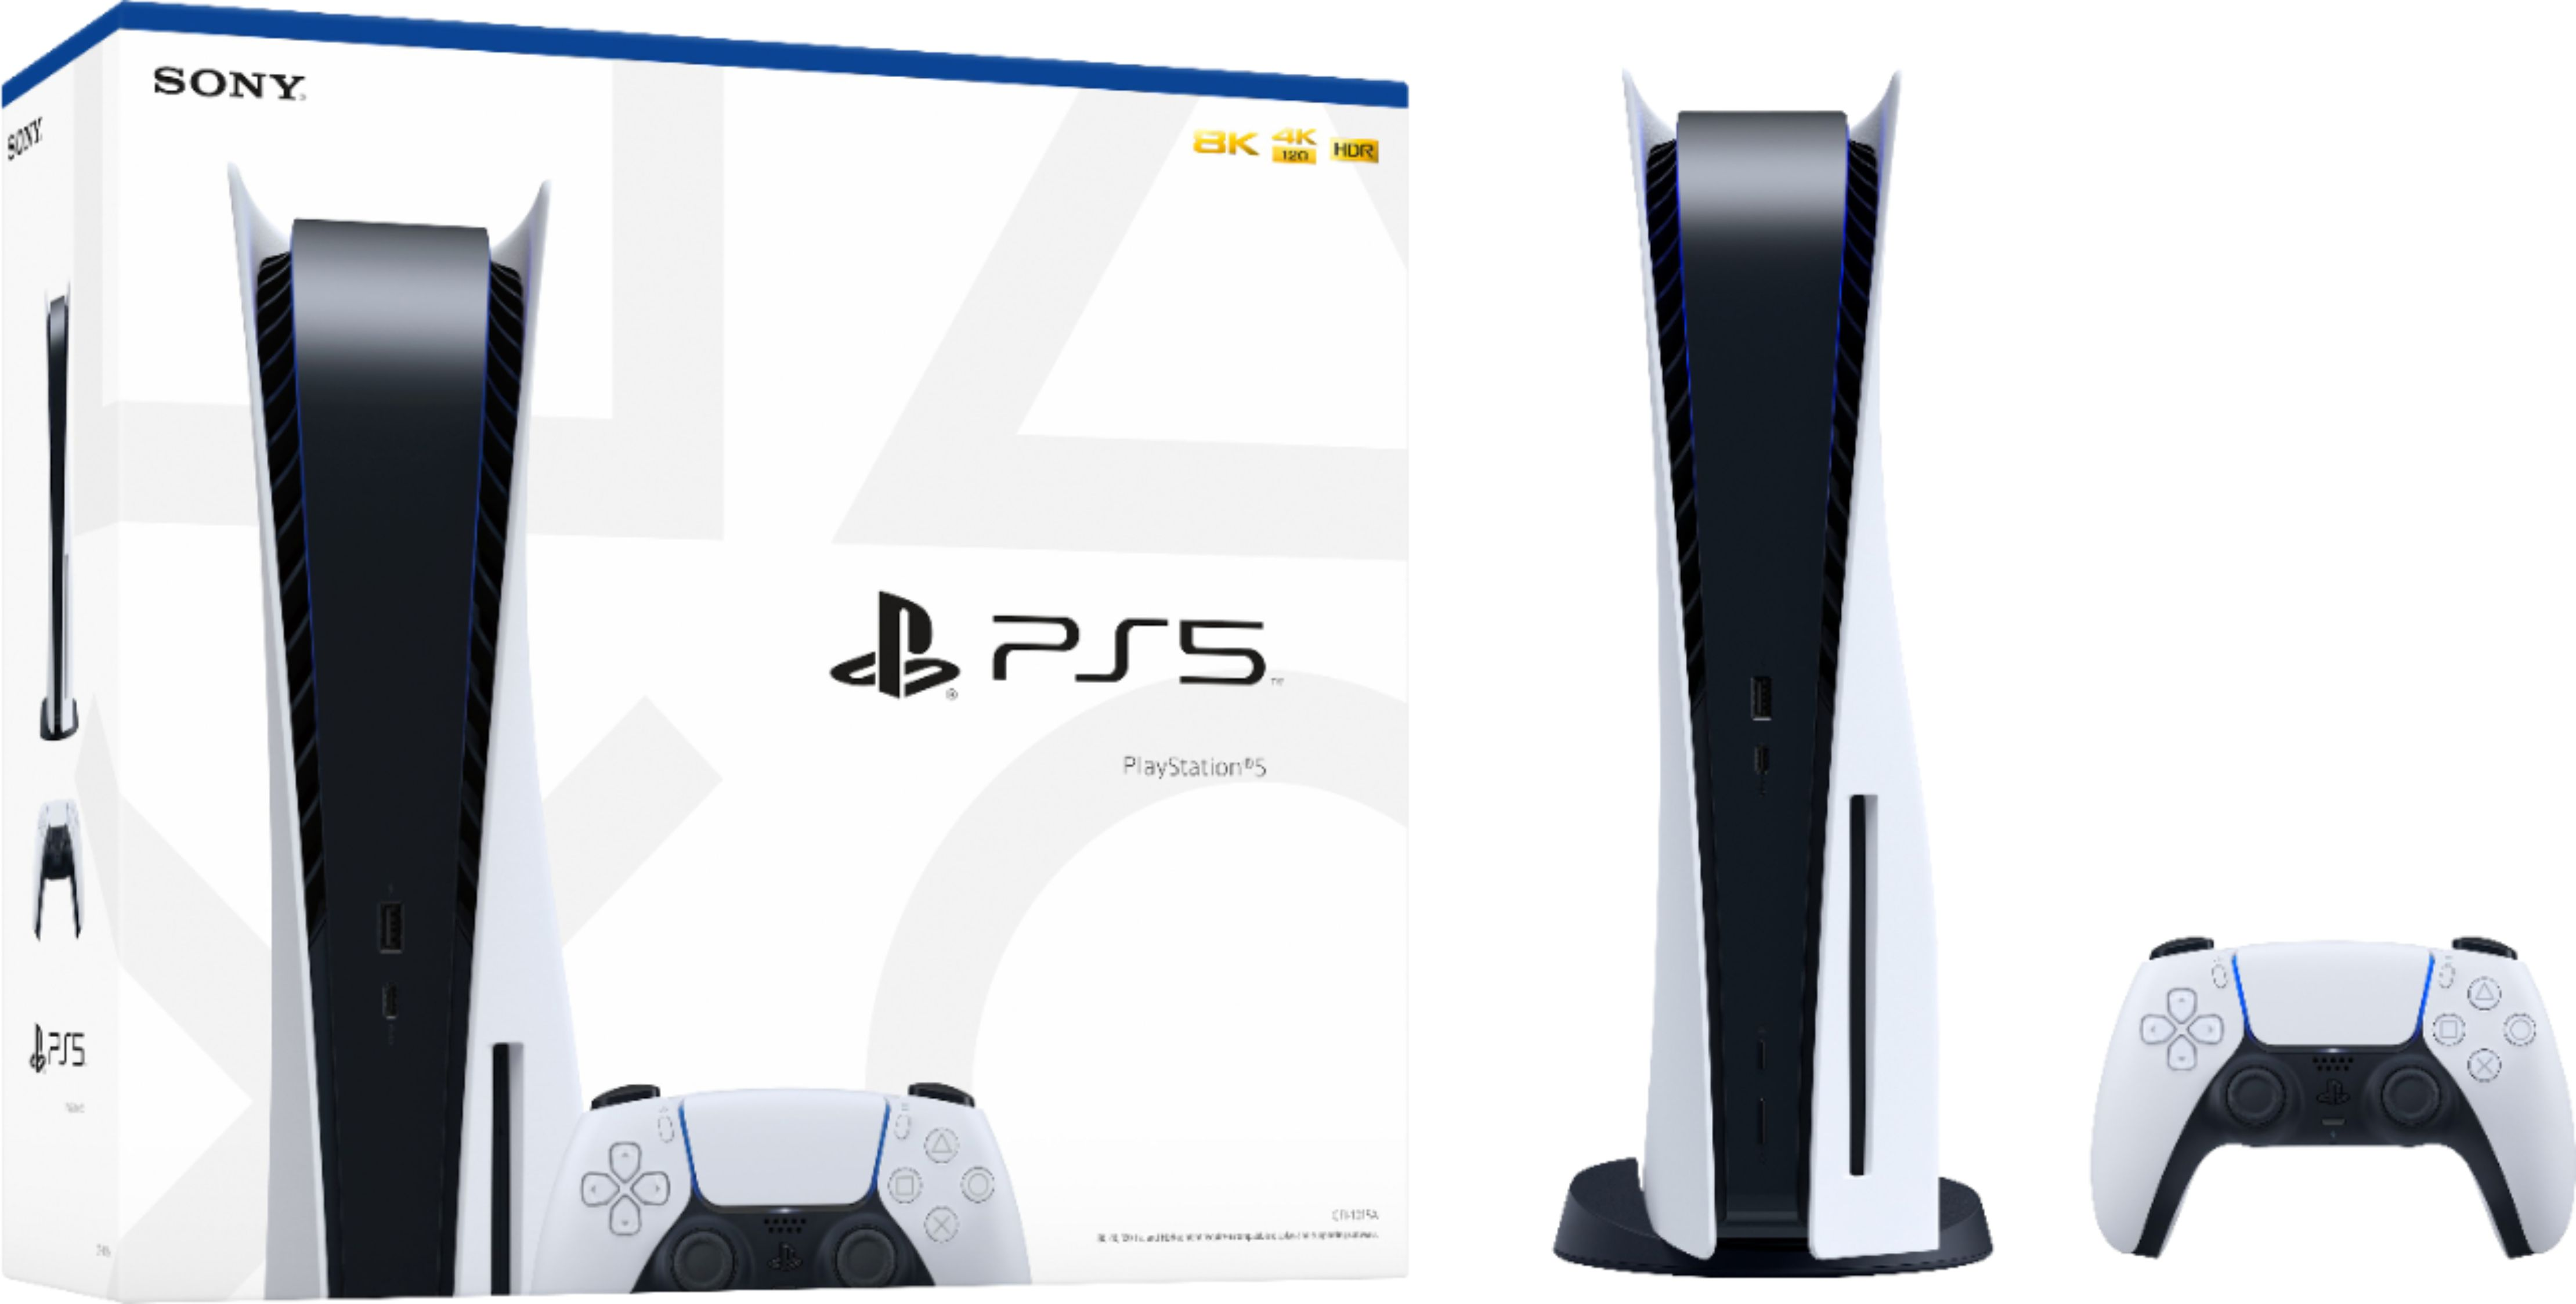 Sony PlayStation 5 Console with  DualSense Wireless Controller - White and Black